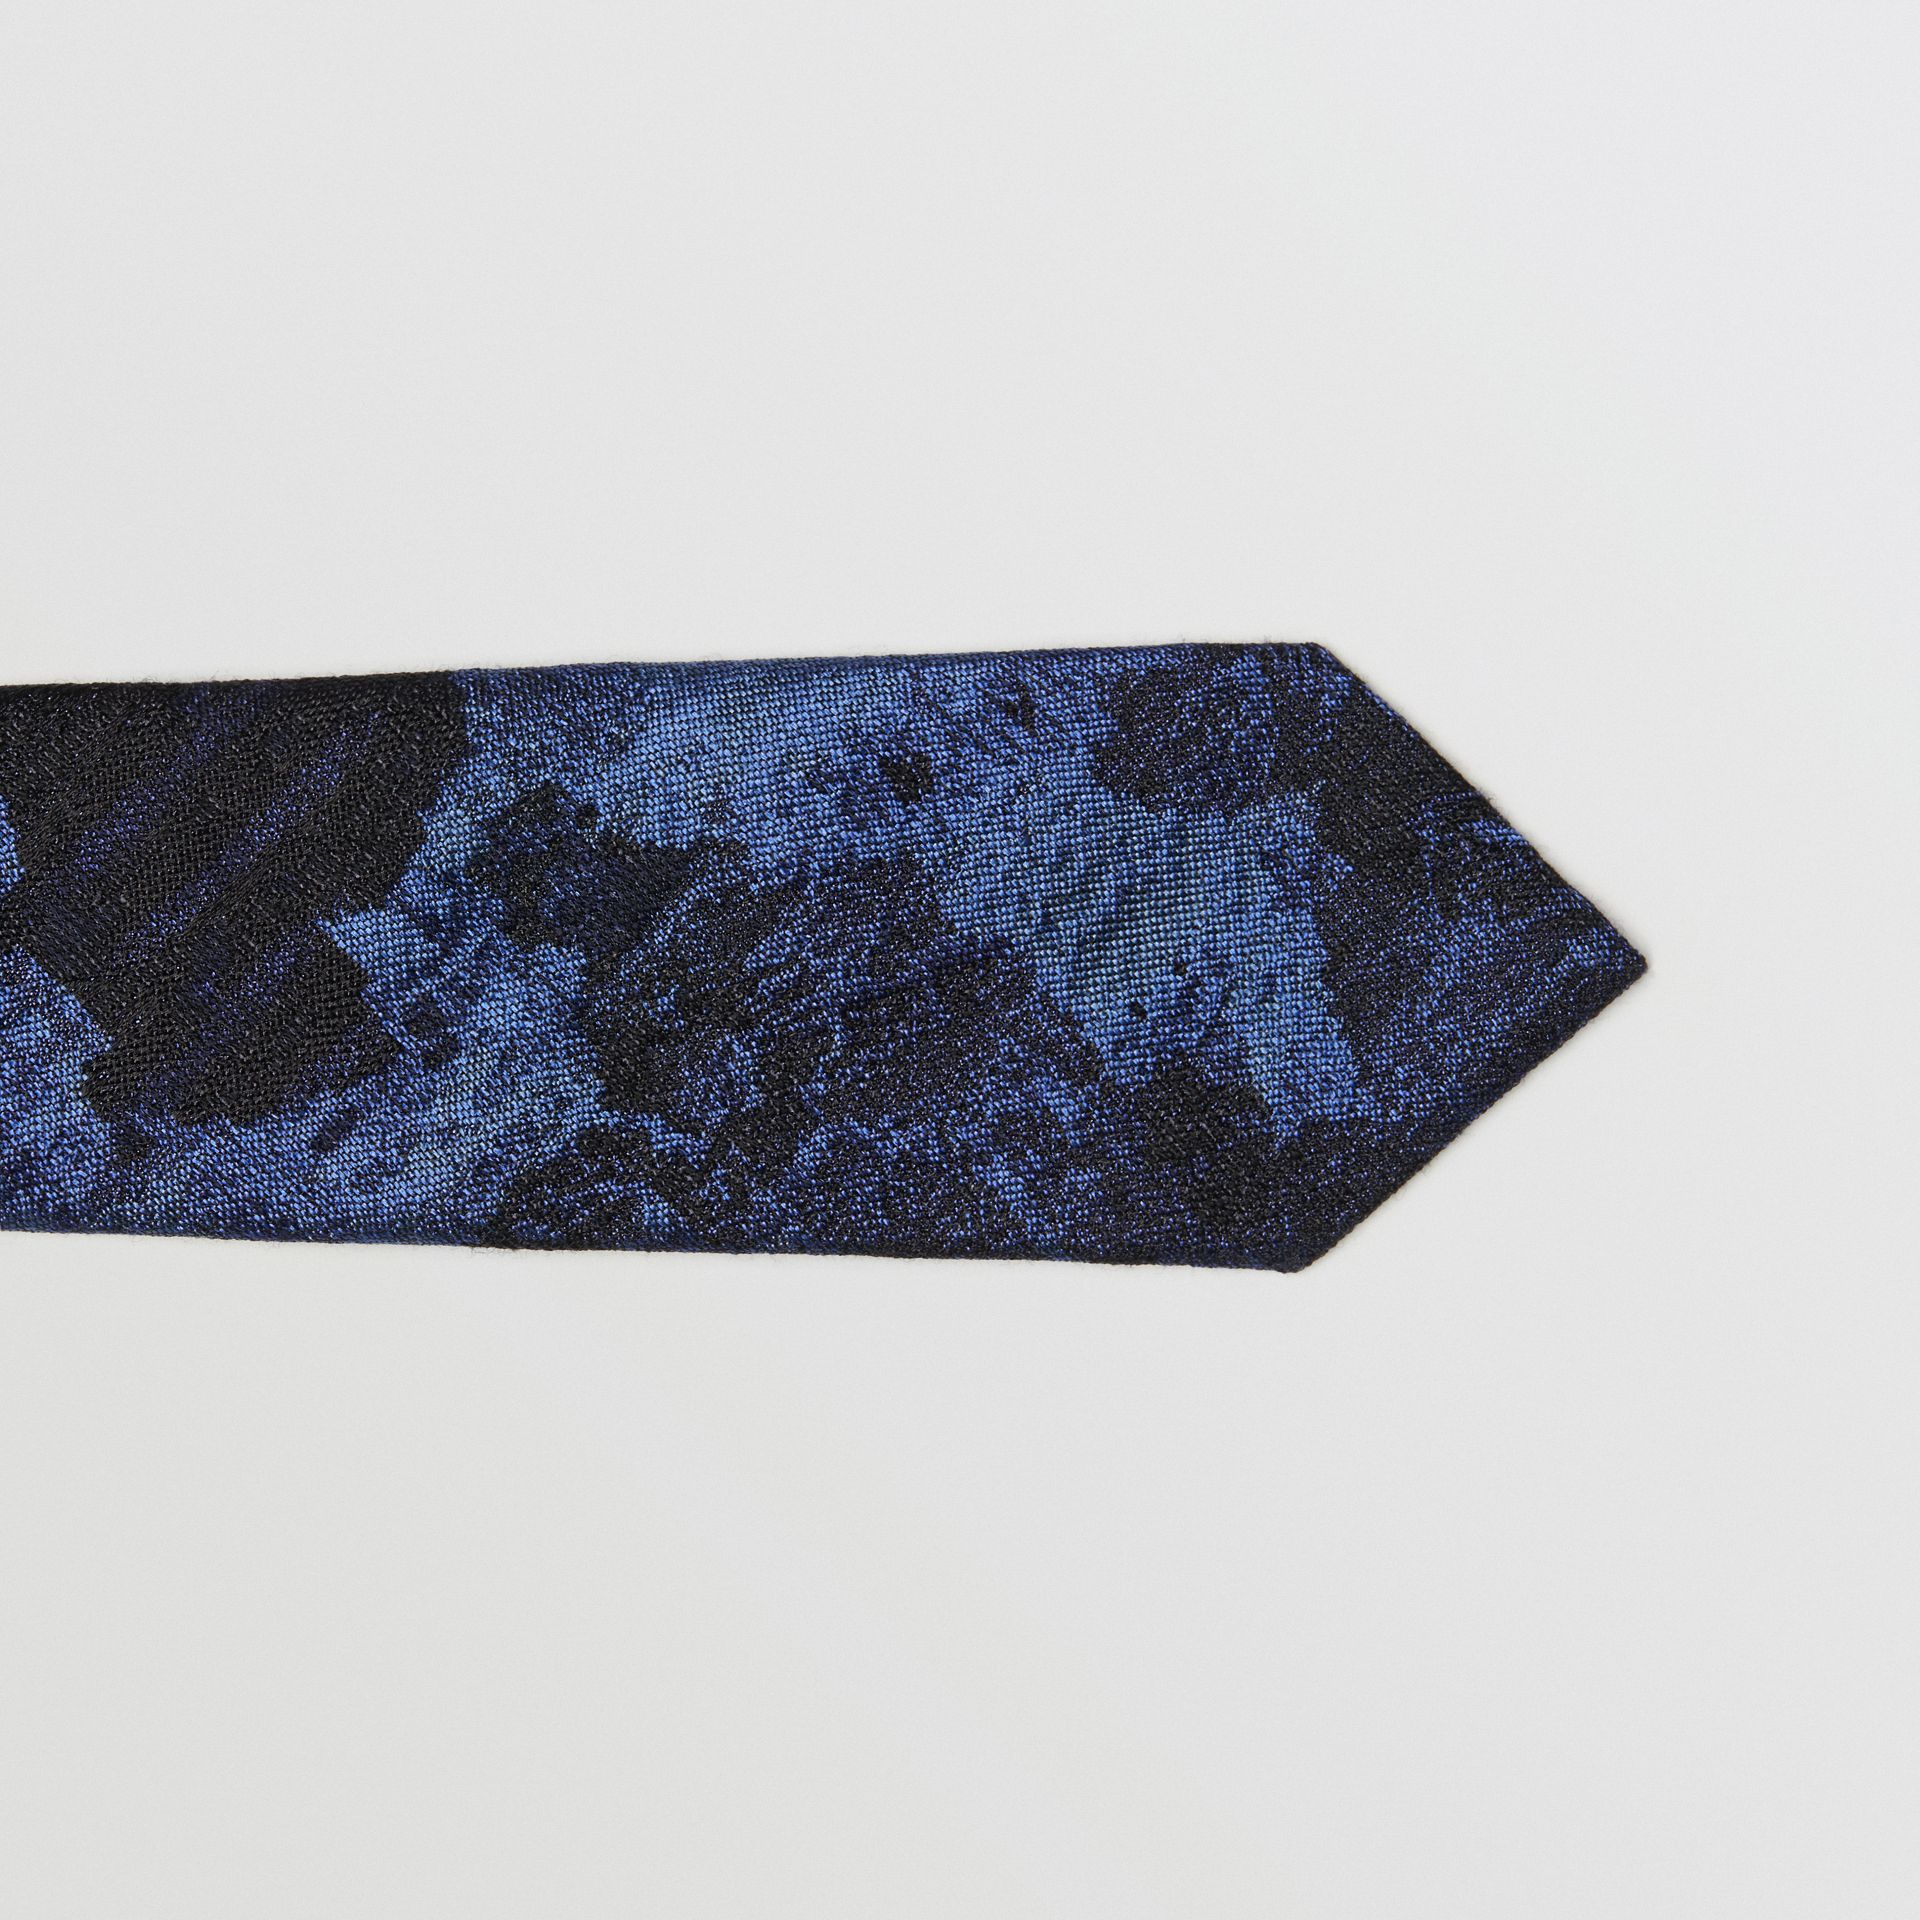 Slim Cut Dreamscape Wool Silk Jacquard Tie in Bright Navy - Men | Burberry - gallery image 1